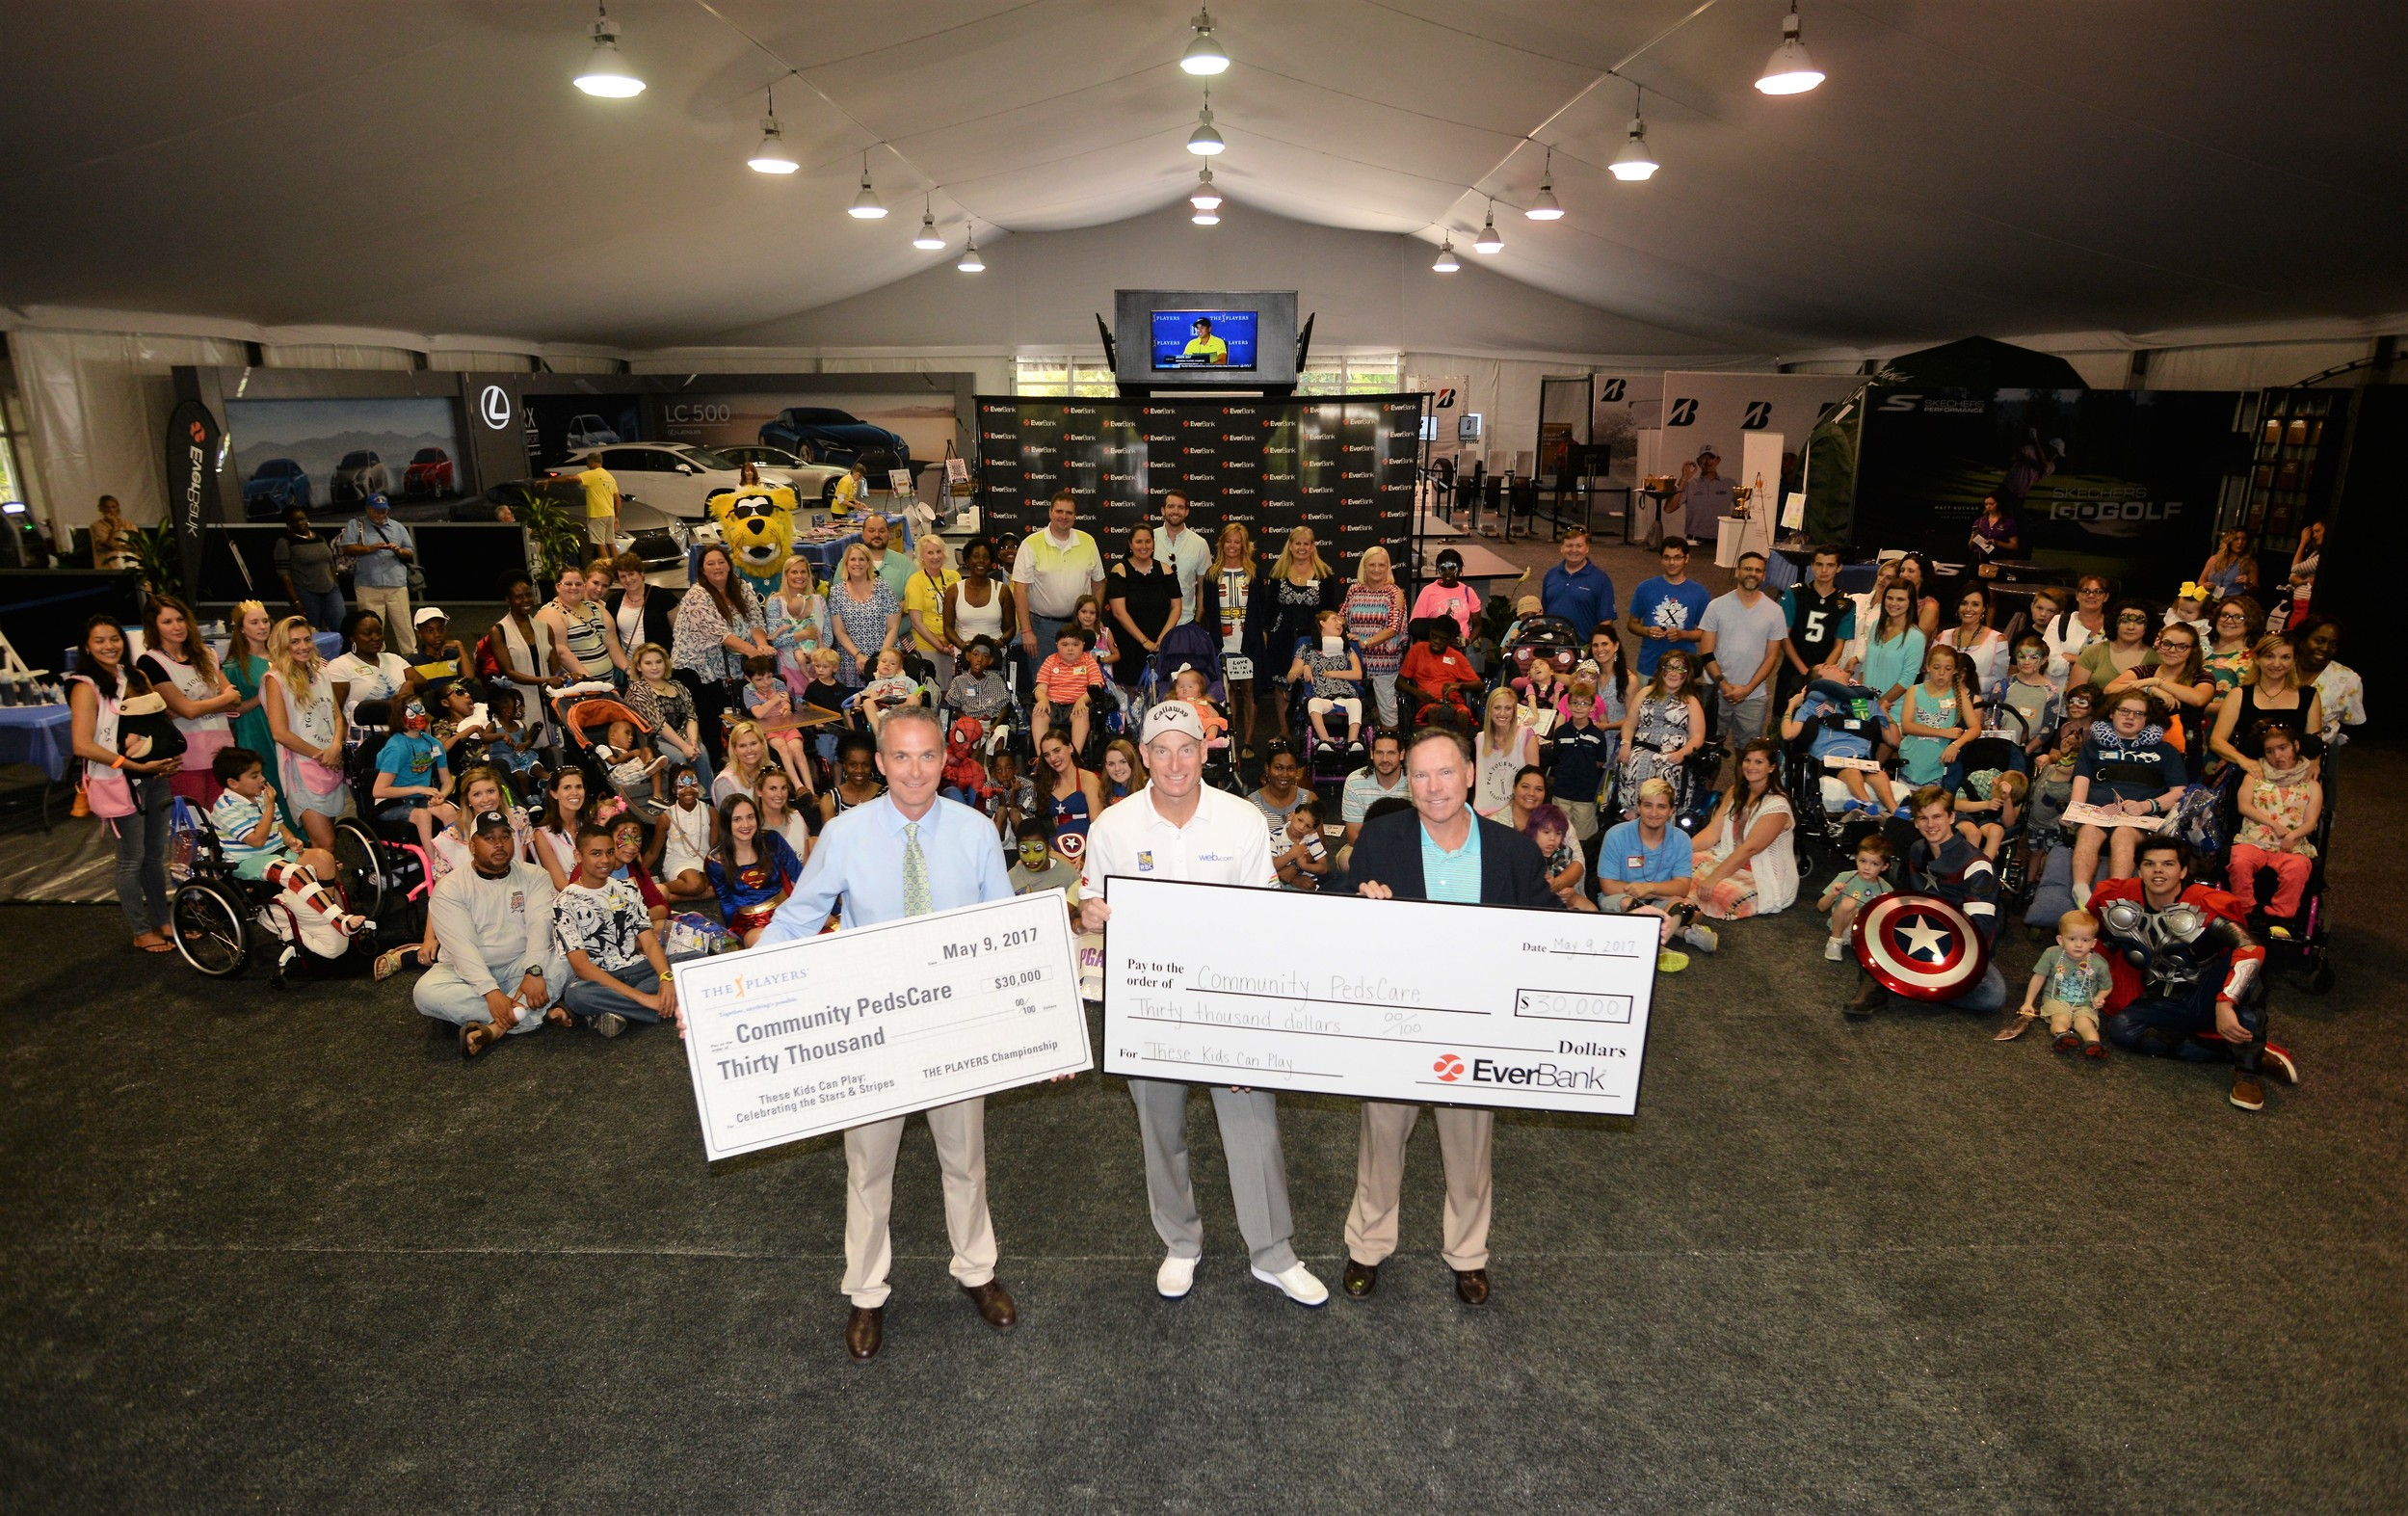 THE PLAYERS Championship Executive Director Jared Rice, PGA Tour player Jim Furyk and Everbank President of North Florida Banking Curt Cunkle display the donations to Community PedsCare.